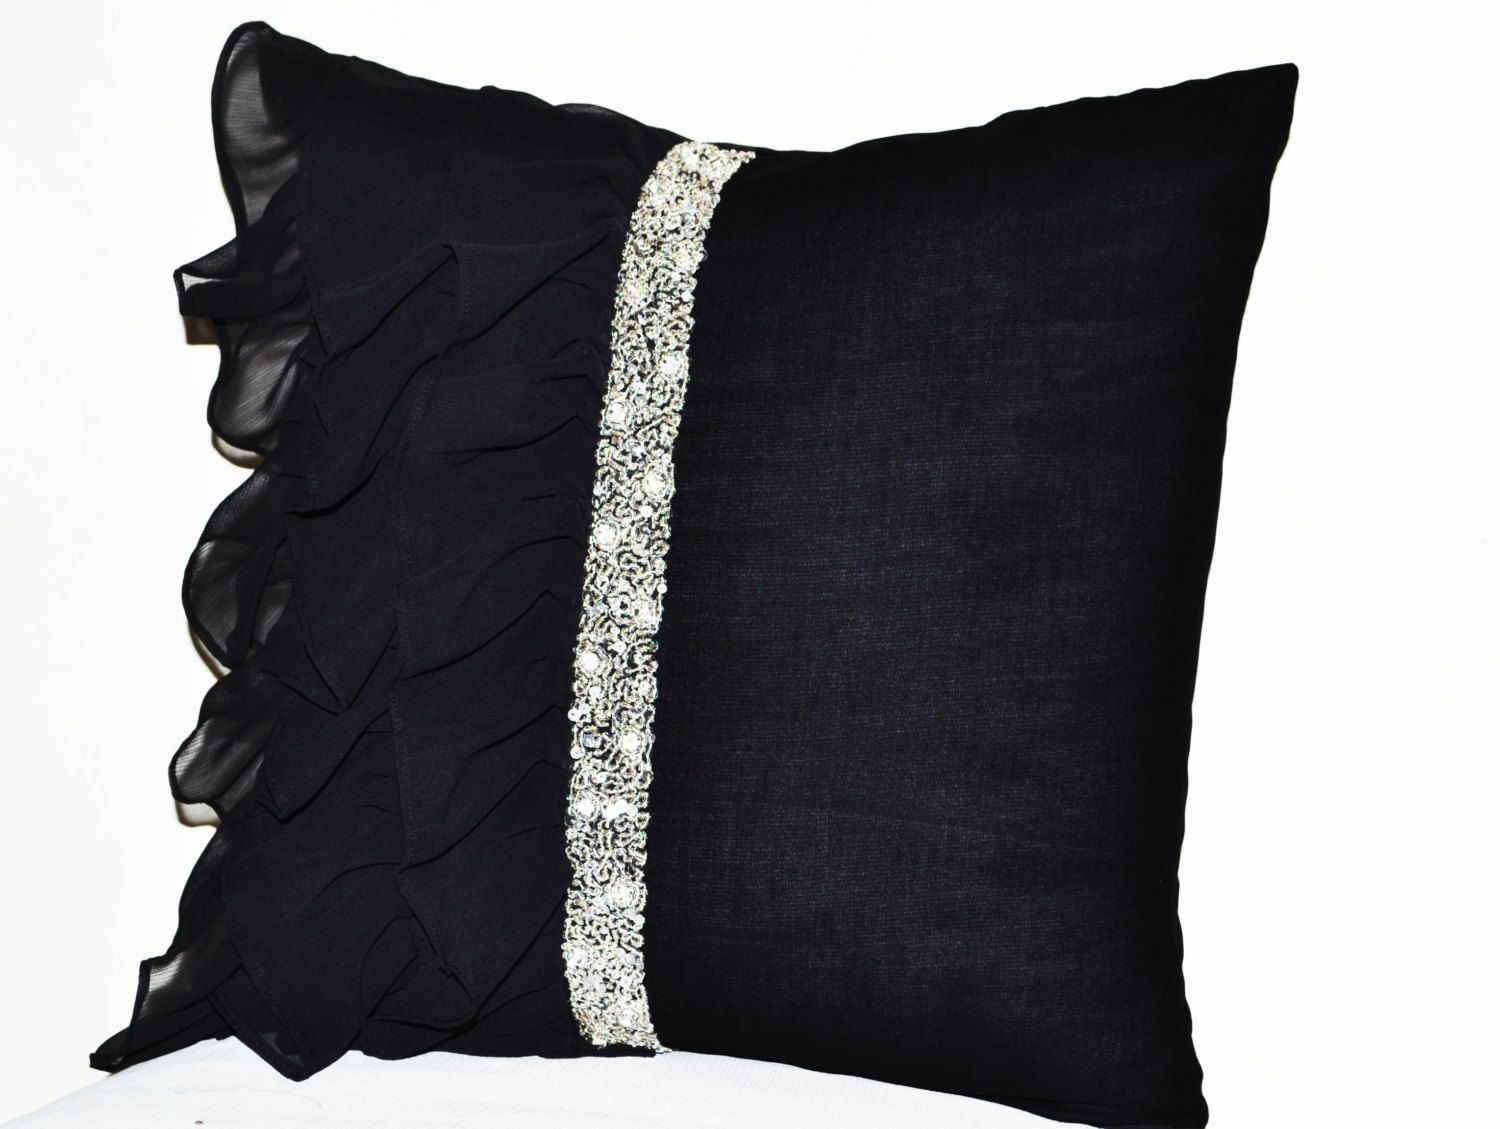 Black ruffled sequin throw pillow -18x18 Decorative Pillow -Black cushion cover -Gift Pillow ...